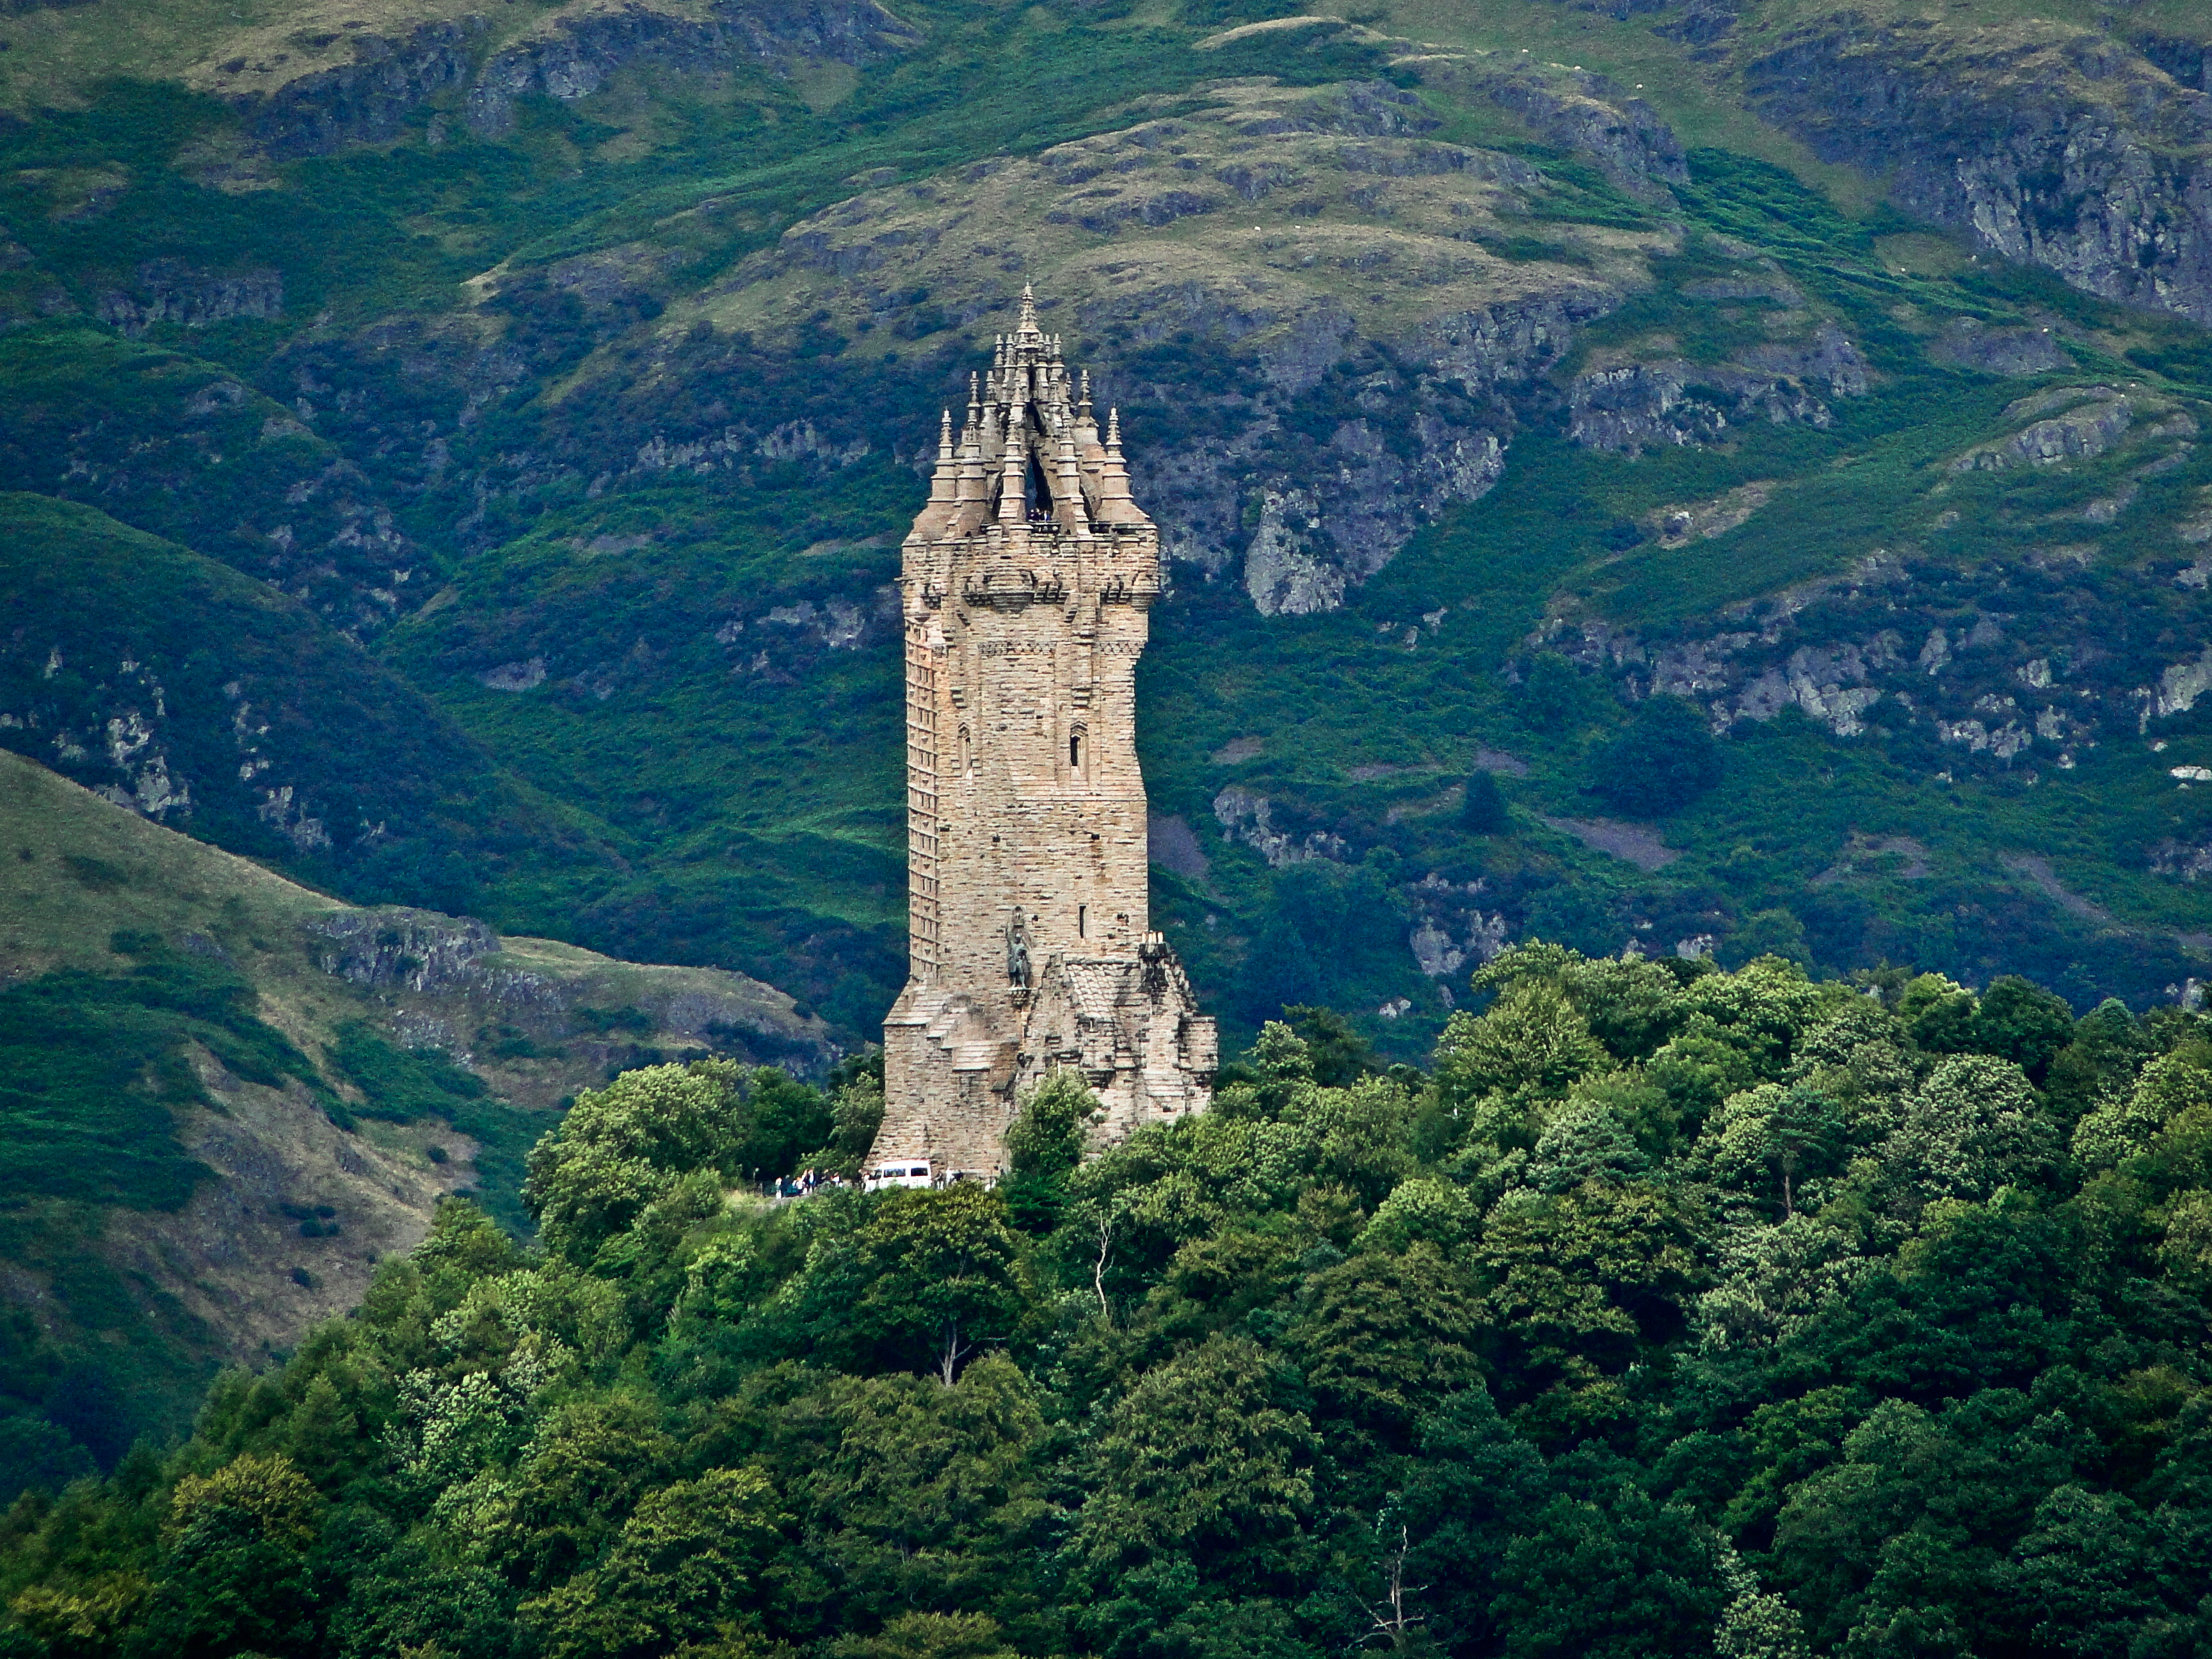 This is Wallace Monument which is visible across the way from one of the courtyards in Stirling Castle